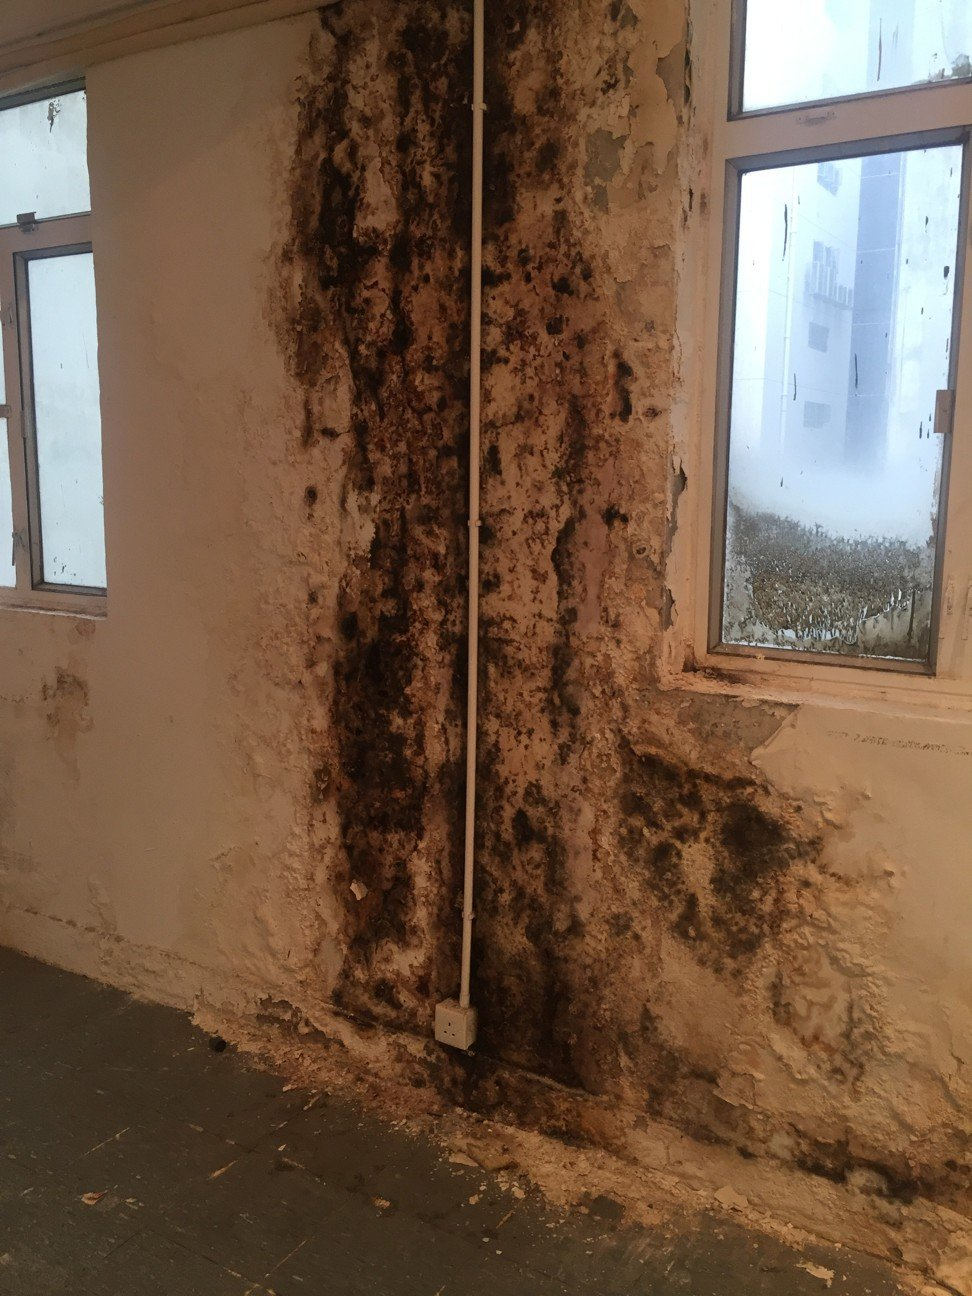 mold, artist Norm Yip's moldy studio was featured in SCMP